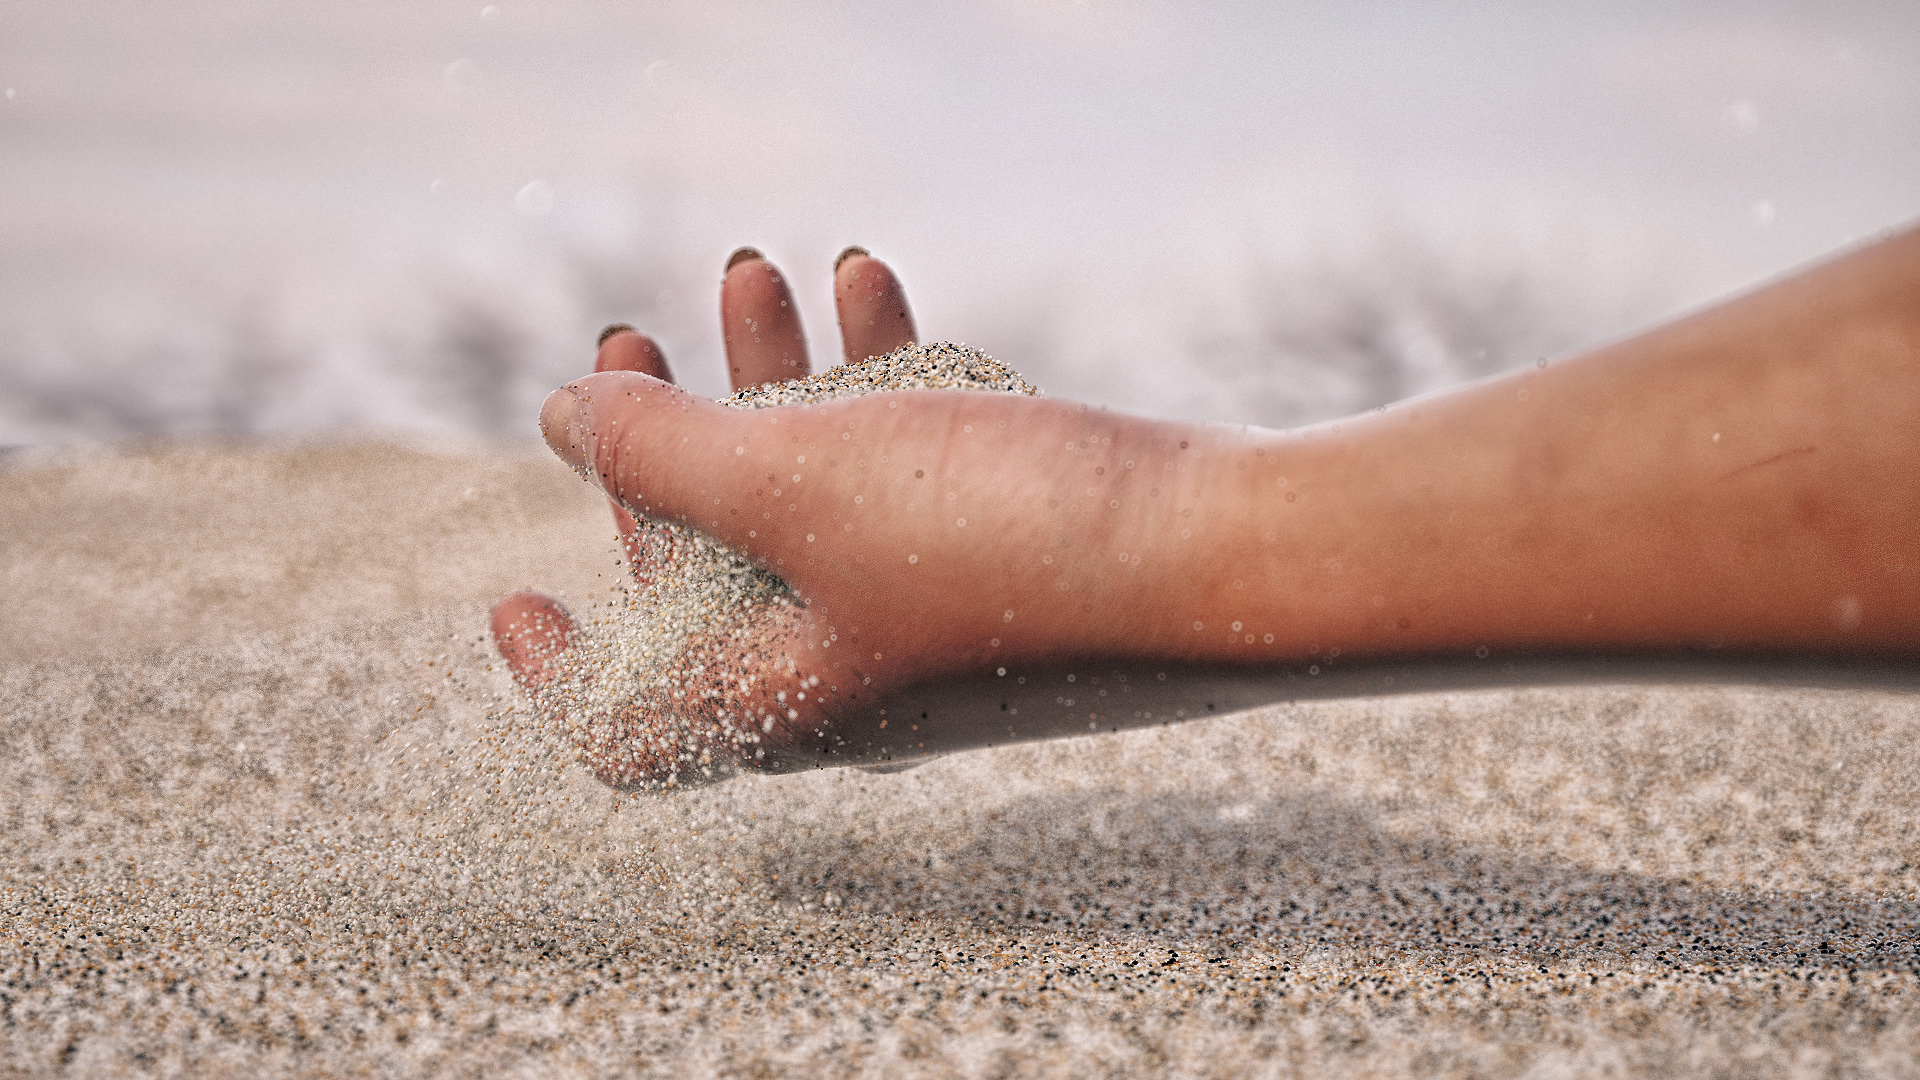 Sand hand by sanfranguy on DeviantArt